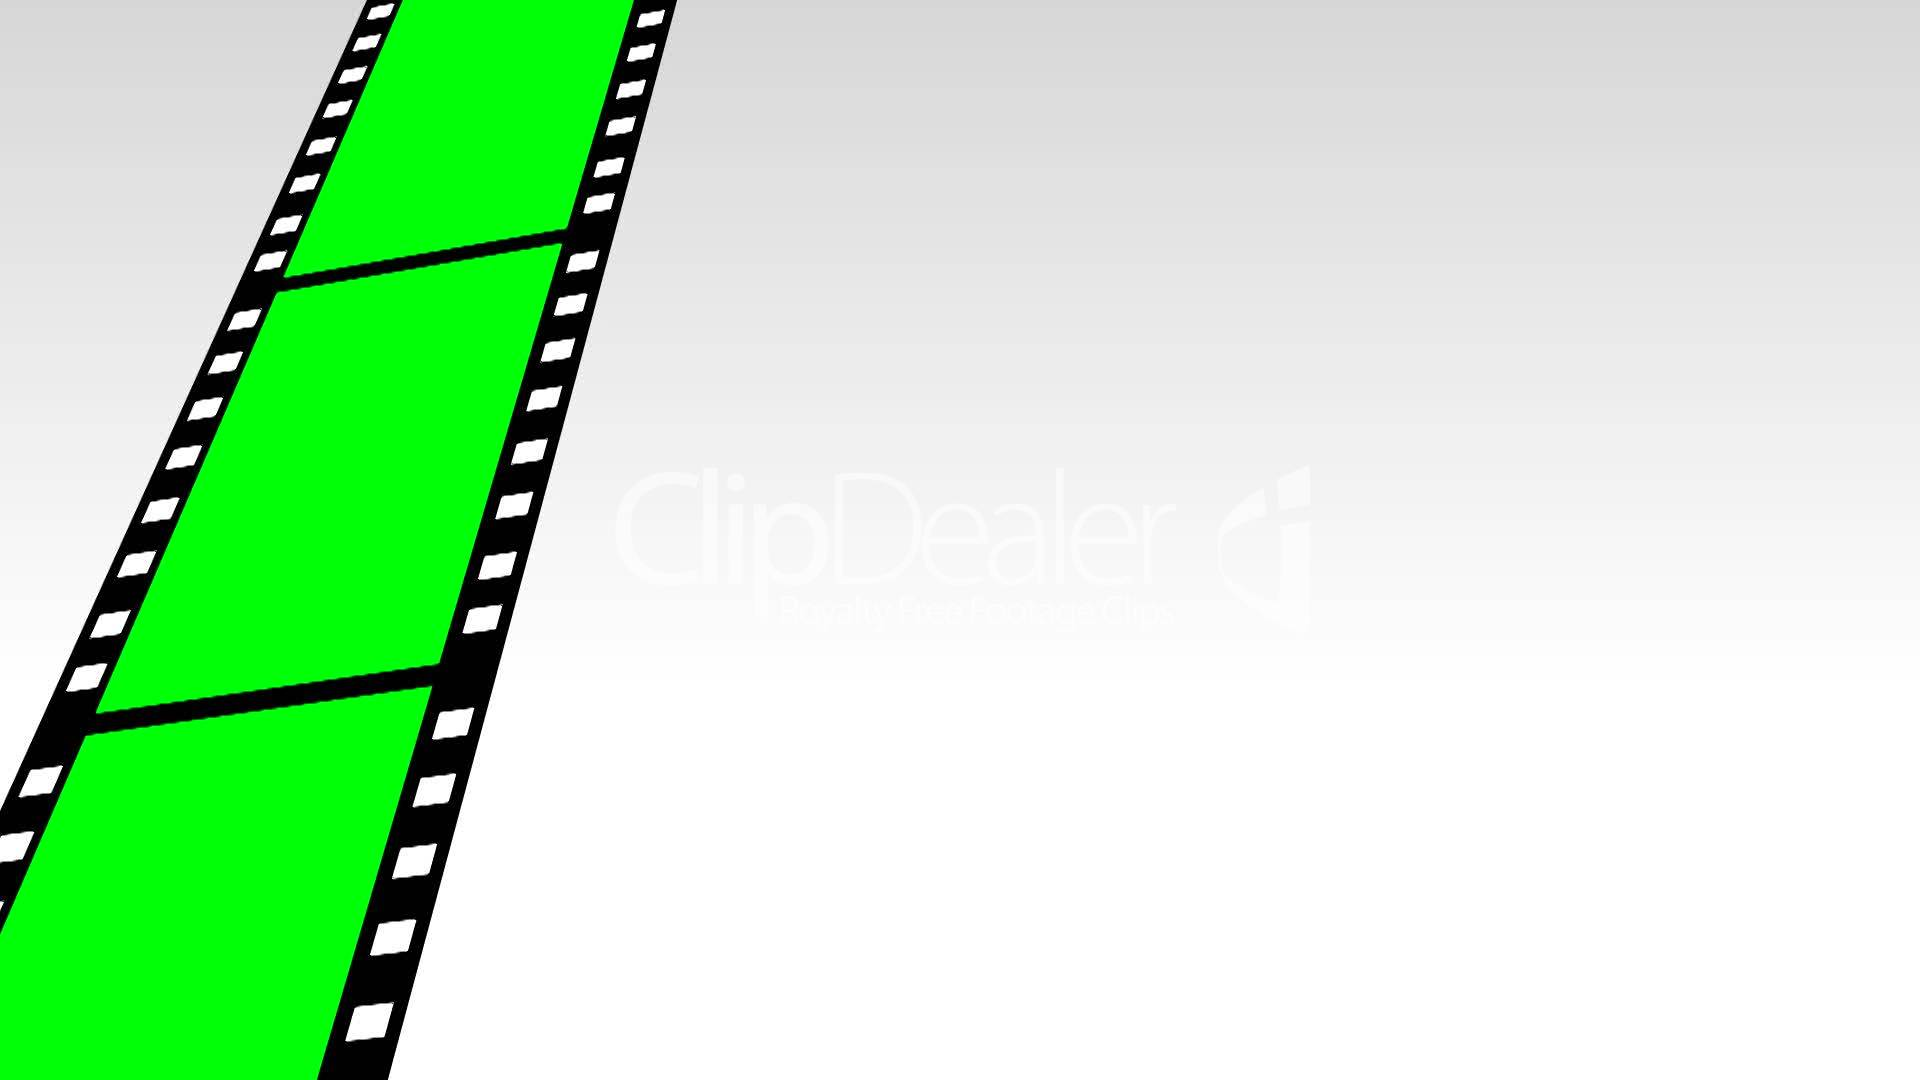 Moving Film Strip: Royalty-free video and stock footage